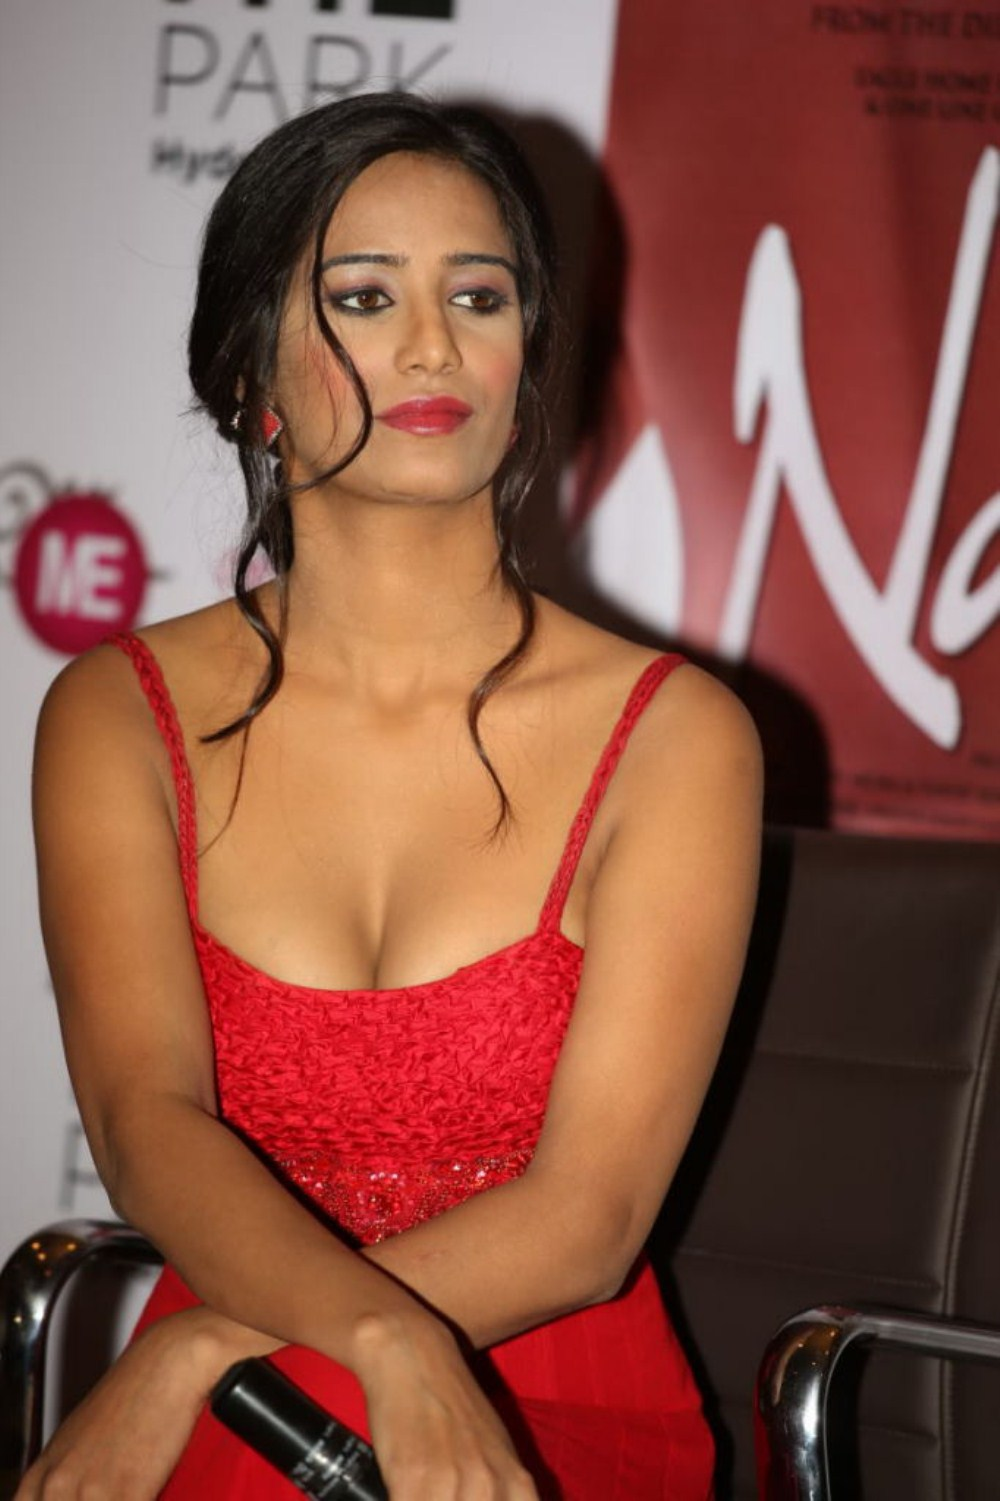 Hot Stylish Poonam pandey hot like red chili trying seduce